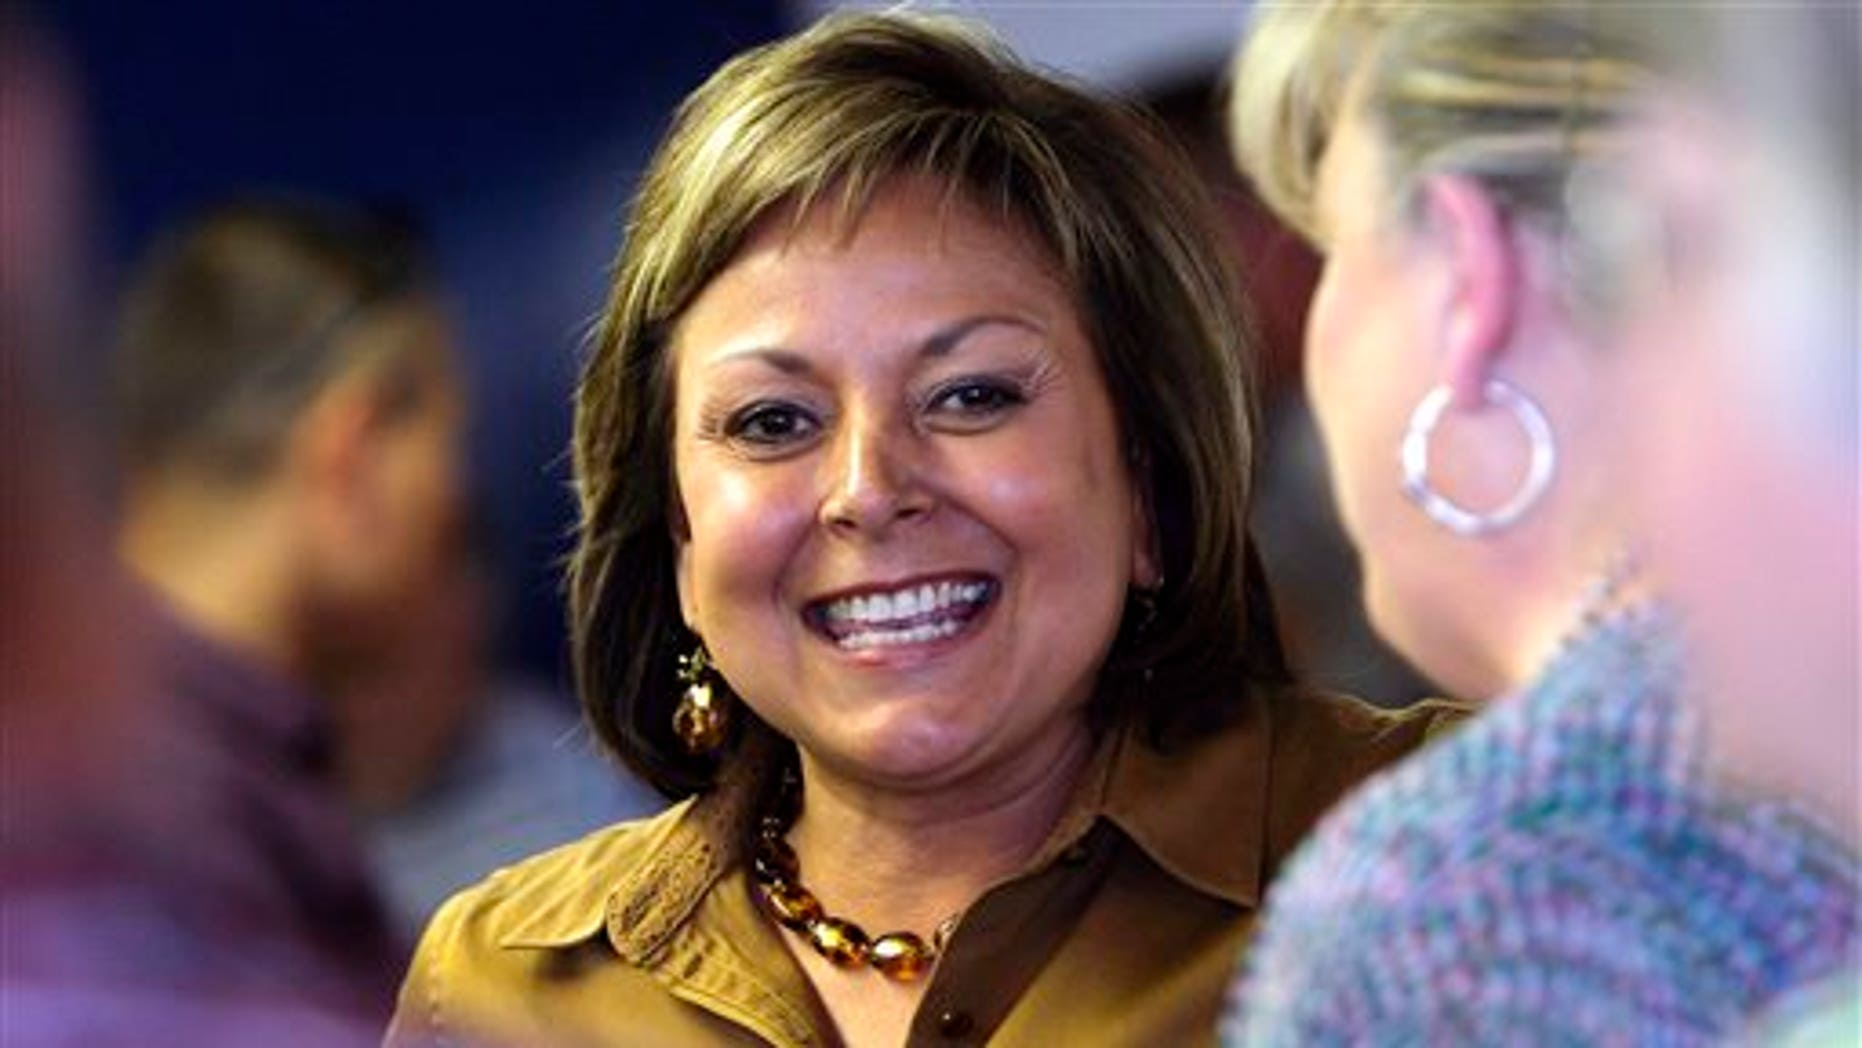 FILE - In this June 4, 2014 file photo, New Mexico Gov. Susana Martinez meets with supporters during a campaign stop at the San Juan County Republican Party Headquarters in Farmington N.M.  Democrat Gary King hopes to follow his fathers footsteps into the governorship of New Mexico but hes struggled to raise money and make headway against Republican Martinez, the nations only Latina governor. (AP Photo/The Daily Times, Jon Austria, File)